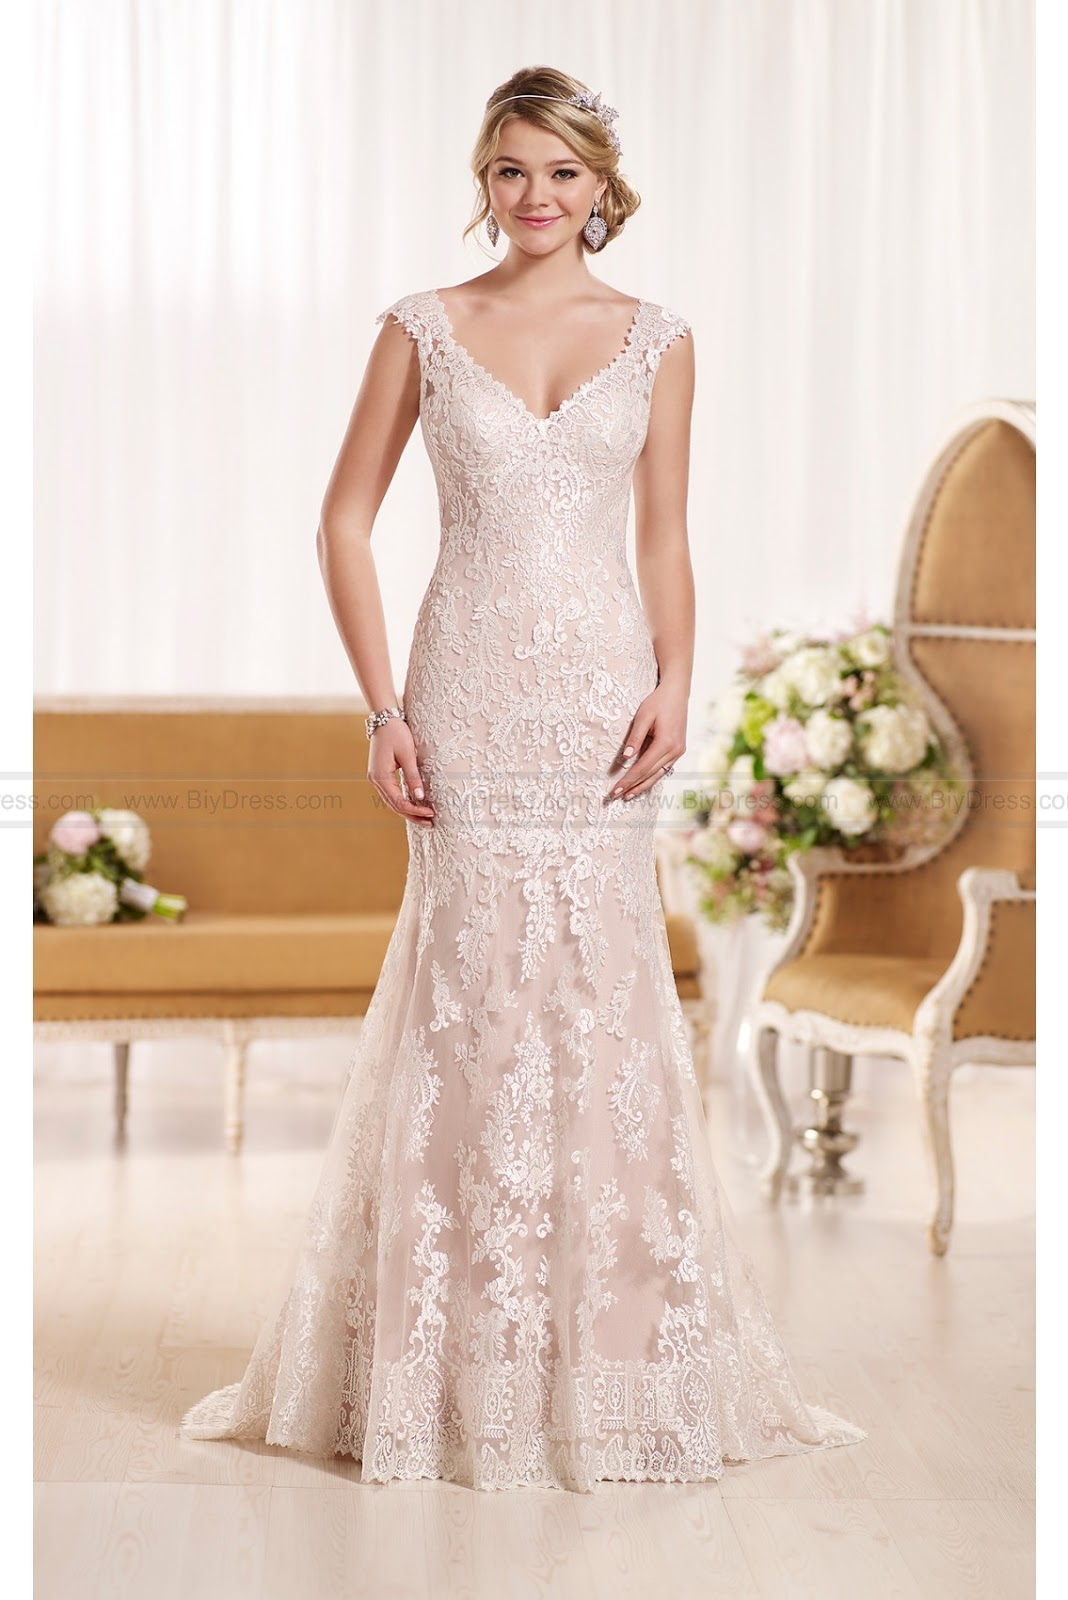 wedding dresses cold climates: Wedding Dresses Sale Online Australia